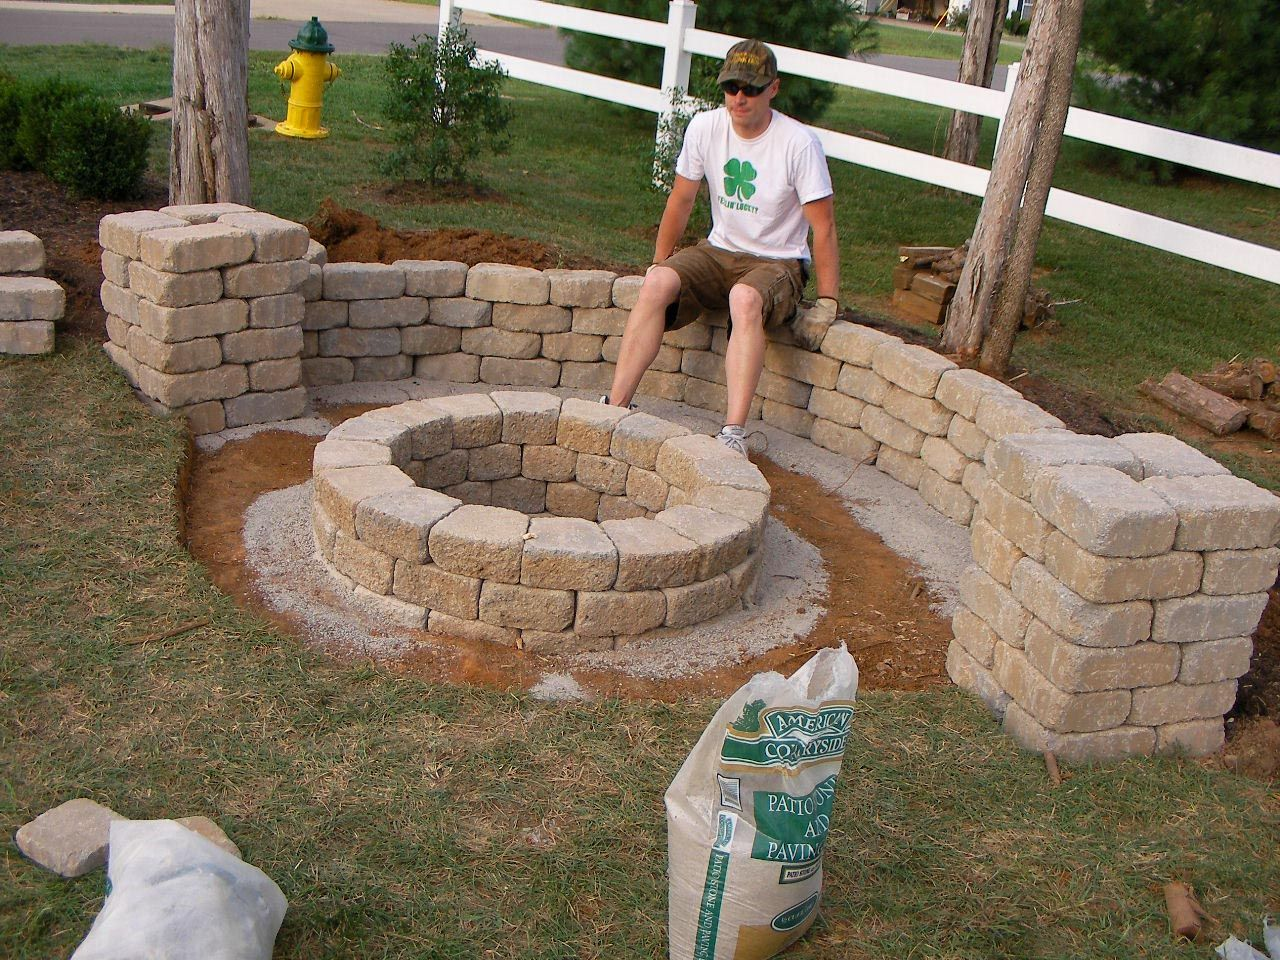 Fire Pit Backyard Ideas above ground pool area turned into a fire pit area Easy Backyard Fire Pit Designs More